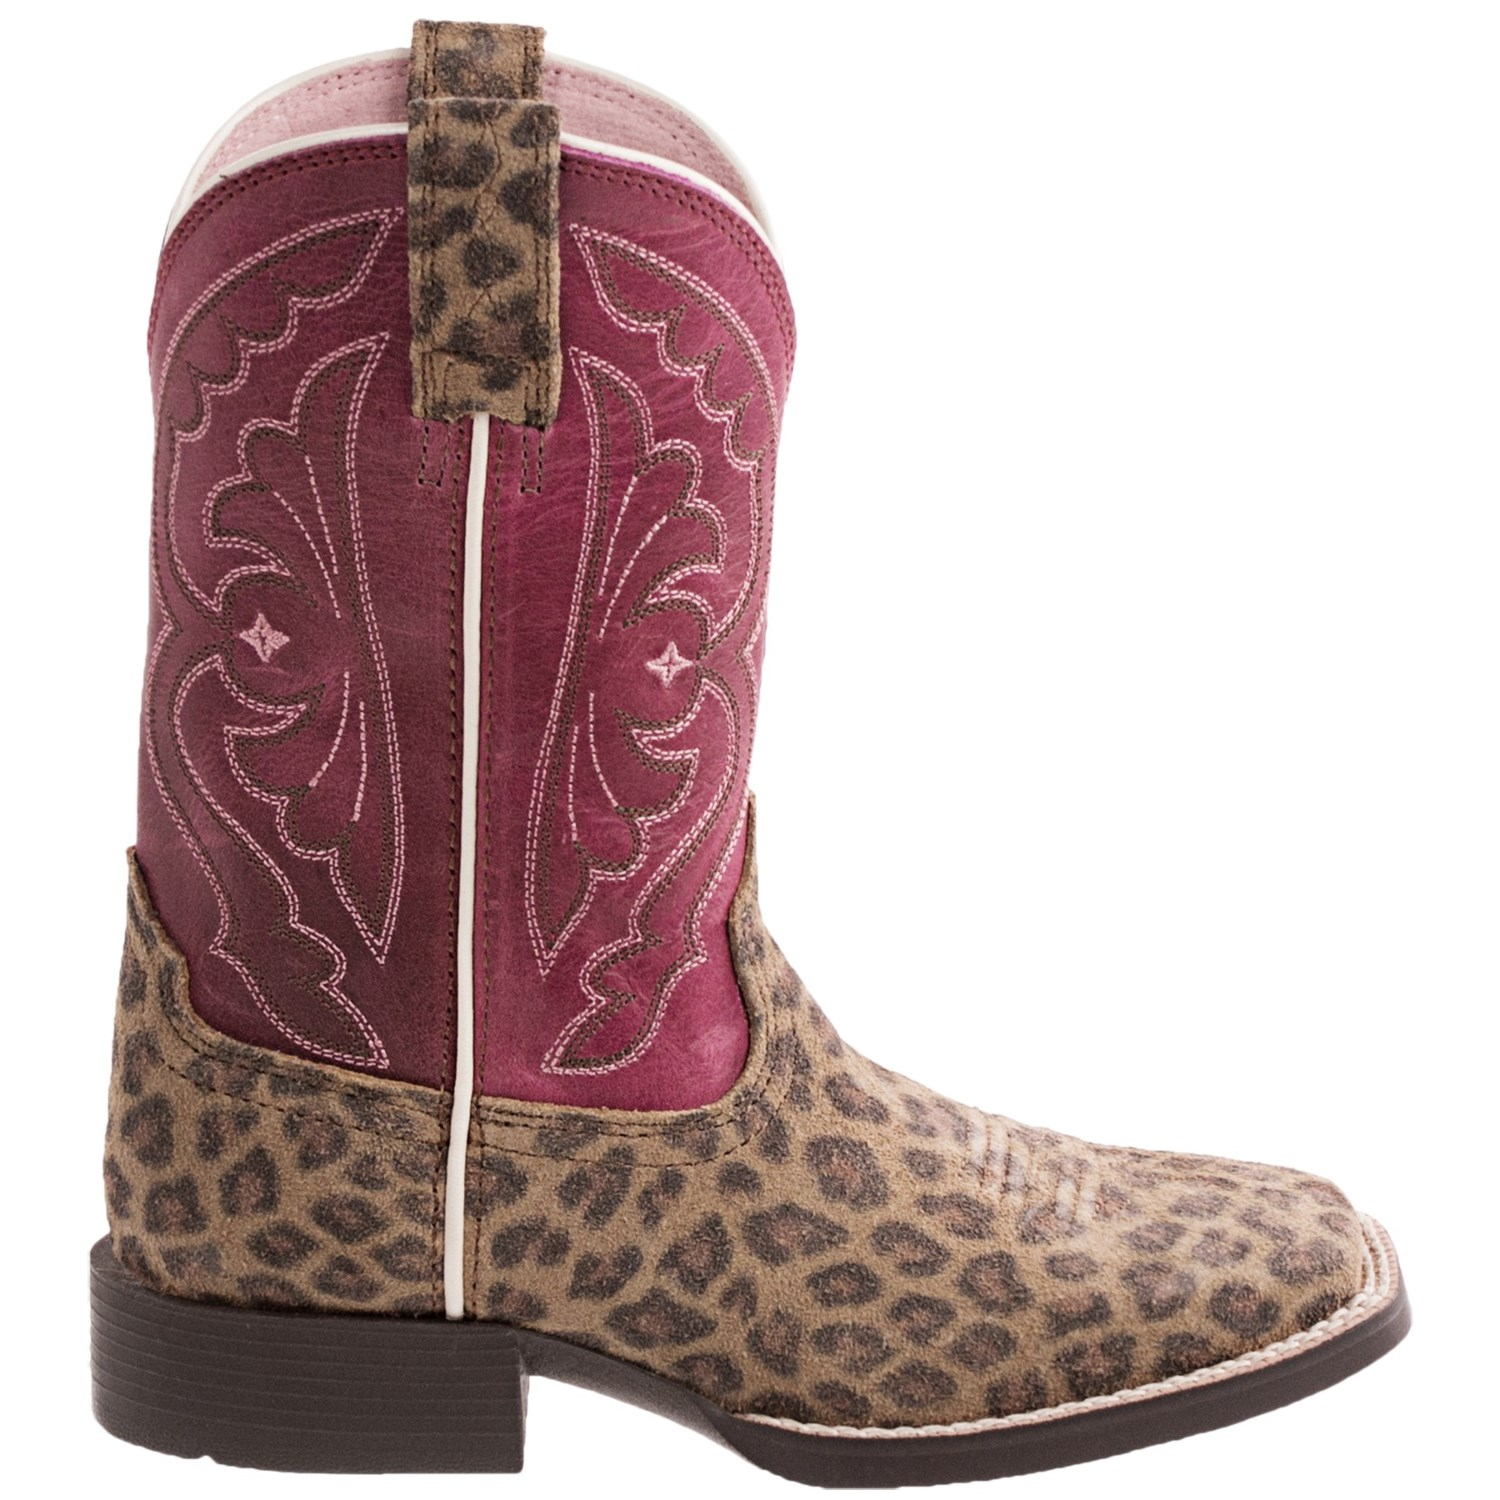 Shop for leopard rain boots online at Target. Free shipping on purchases over $35 and save 5% every day with your Target REDcard.